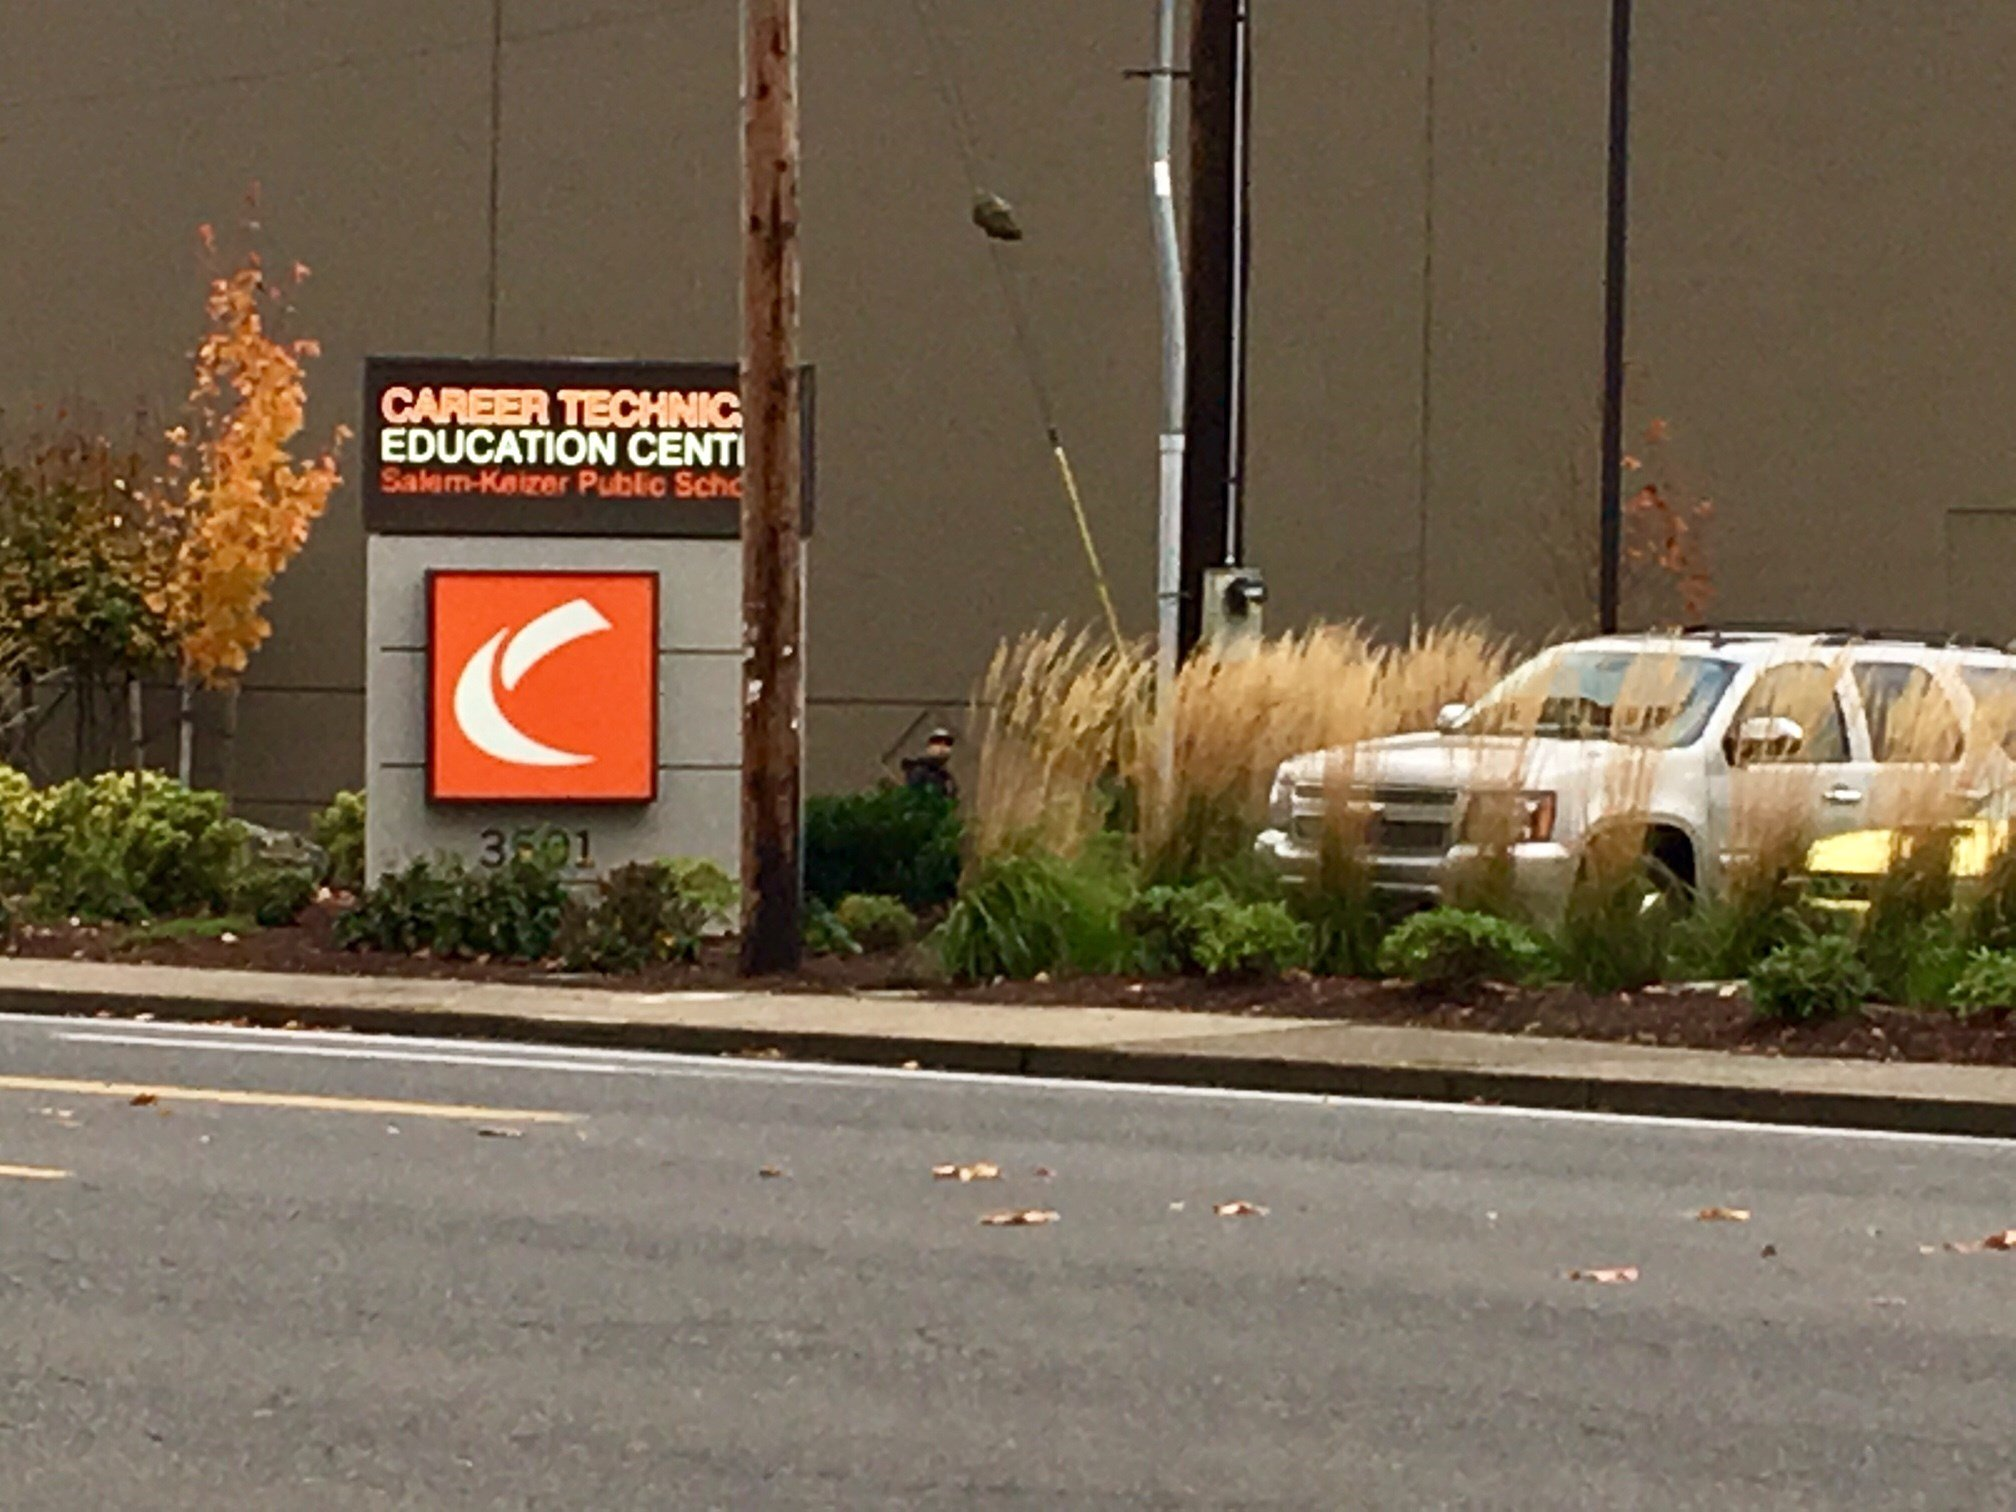 The Career Technical Education Center in Salem. (KPTV)